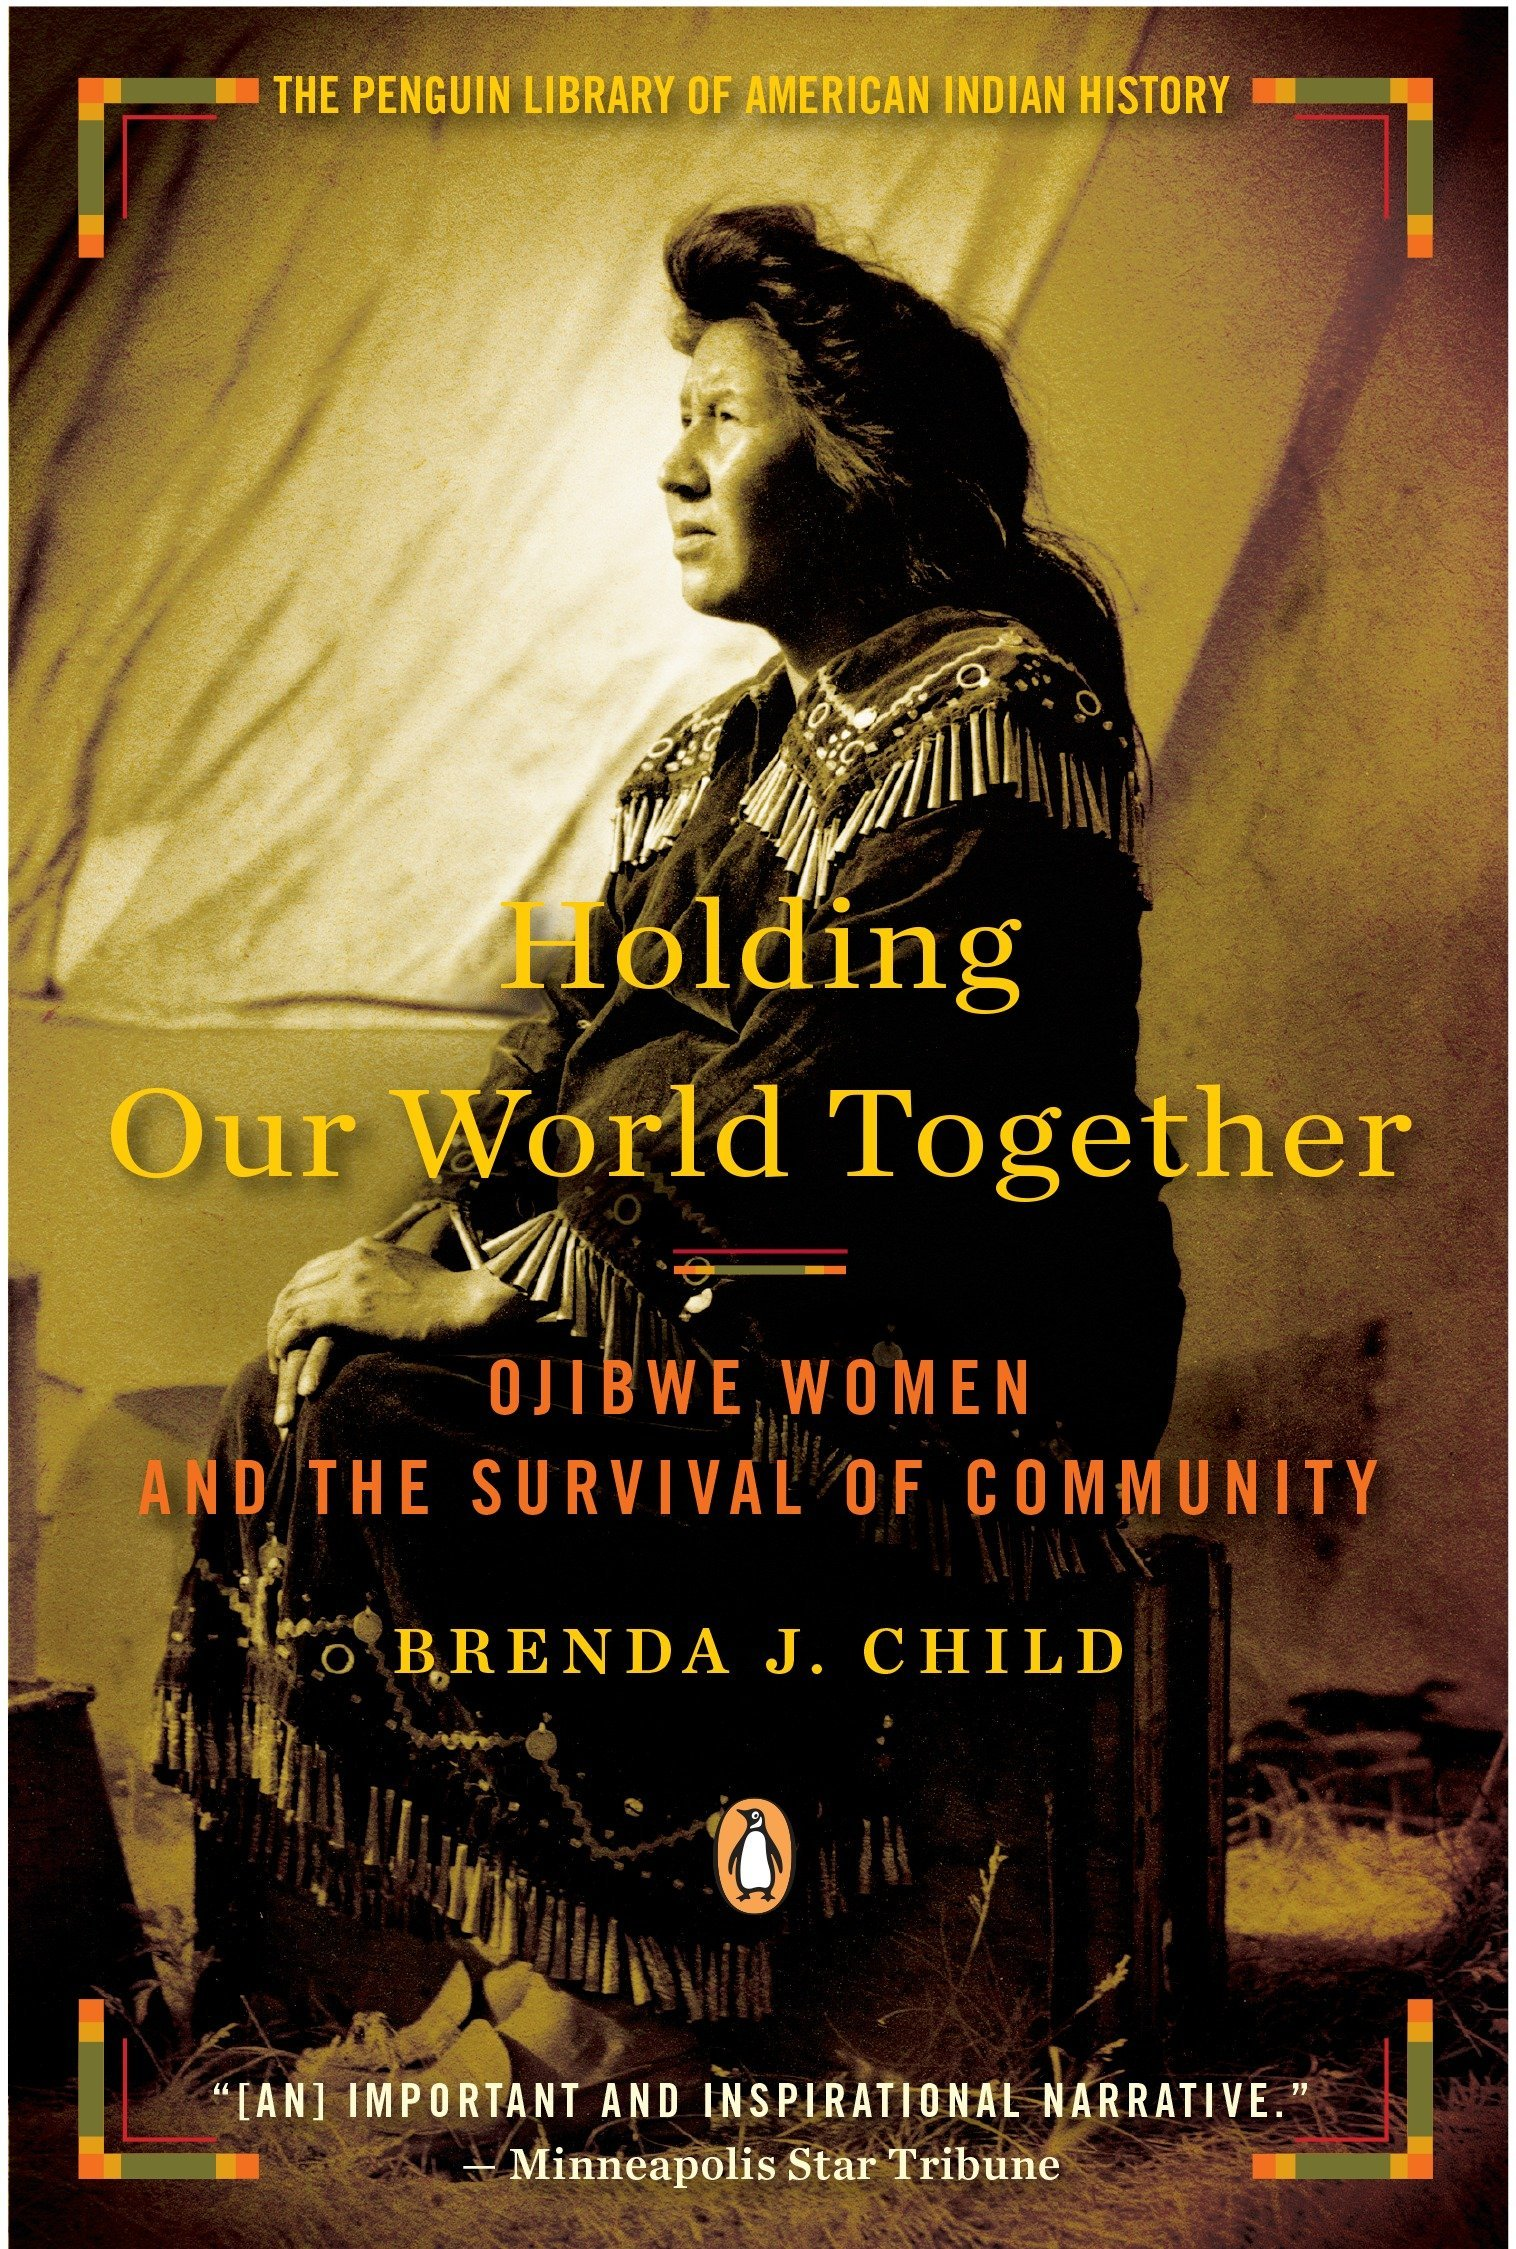 Holding Our World Together: Ojibwe Women and the Survival of Community (Penguin Library of American Indian History) PDF